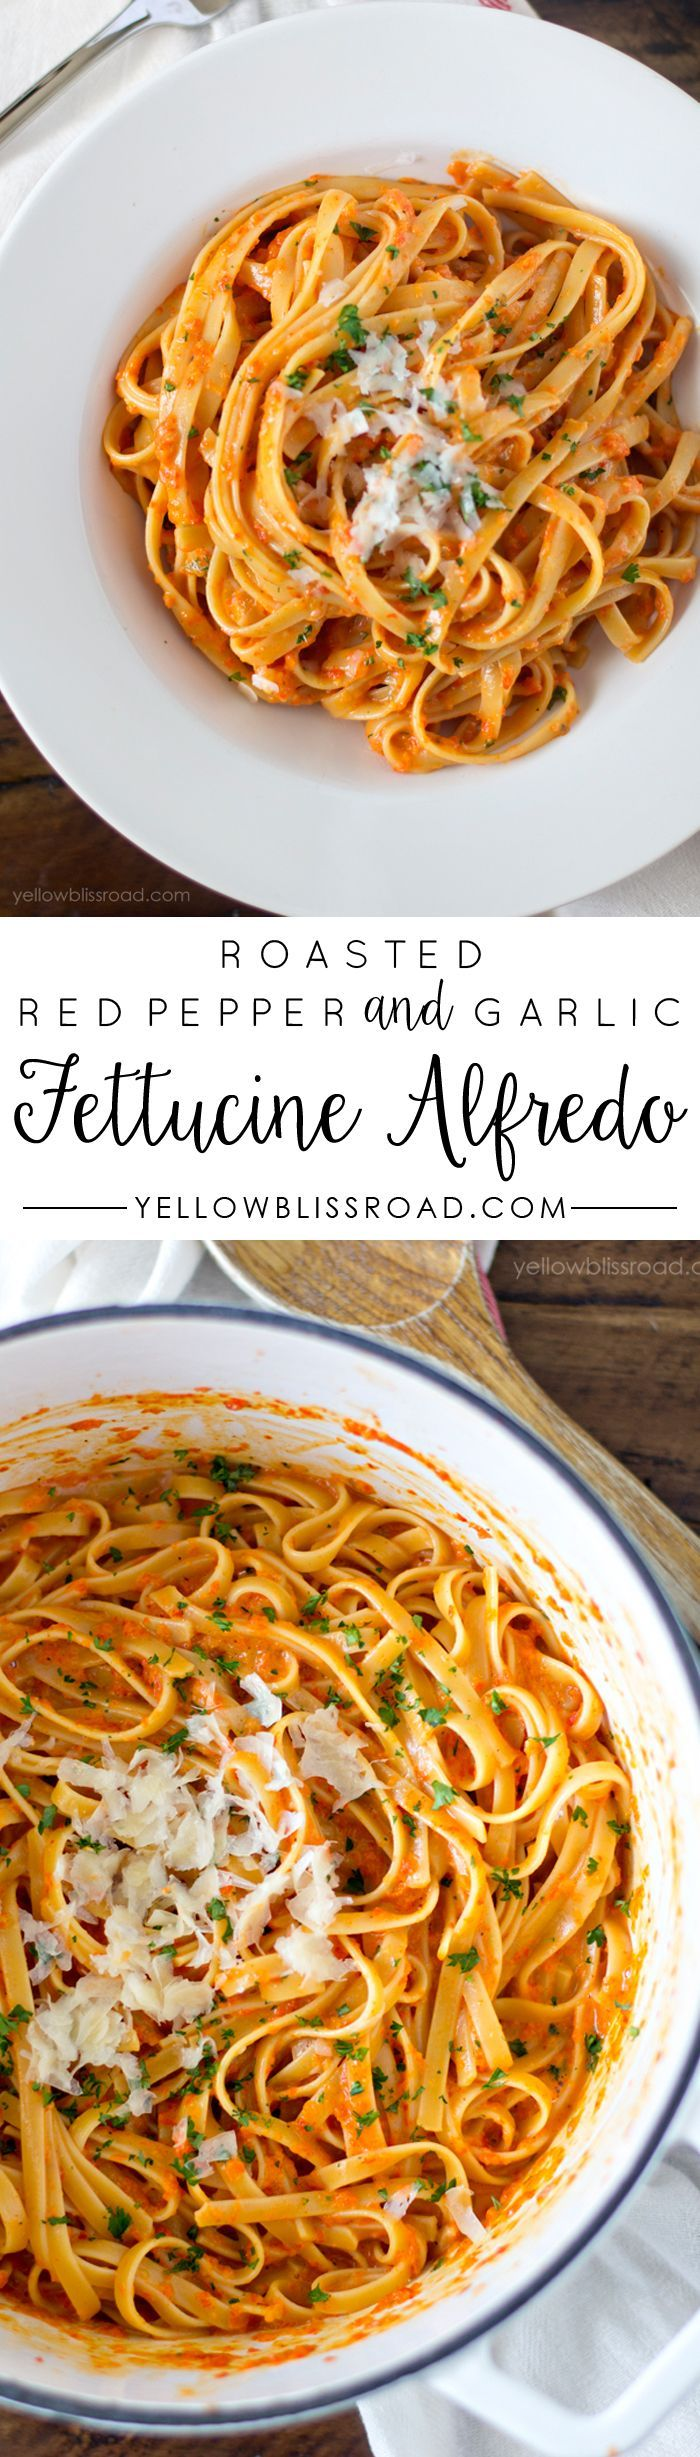 Roasted Red Pepper and Garlic Fettuccine Alfredo